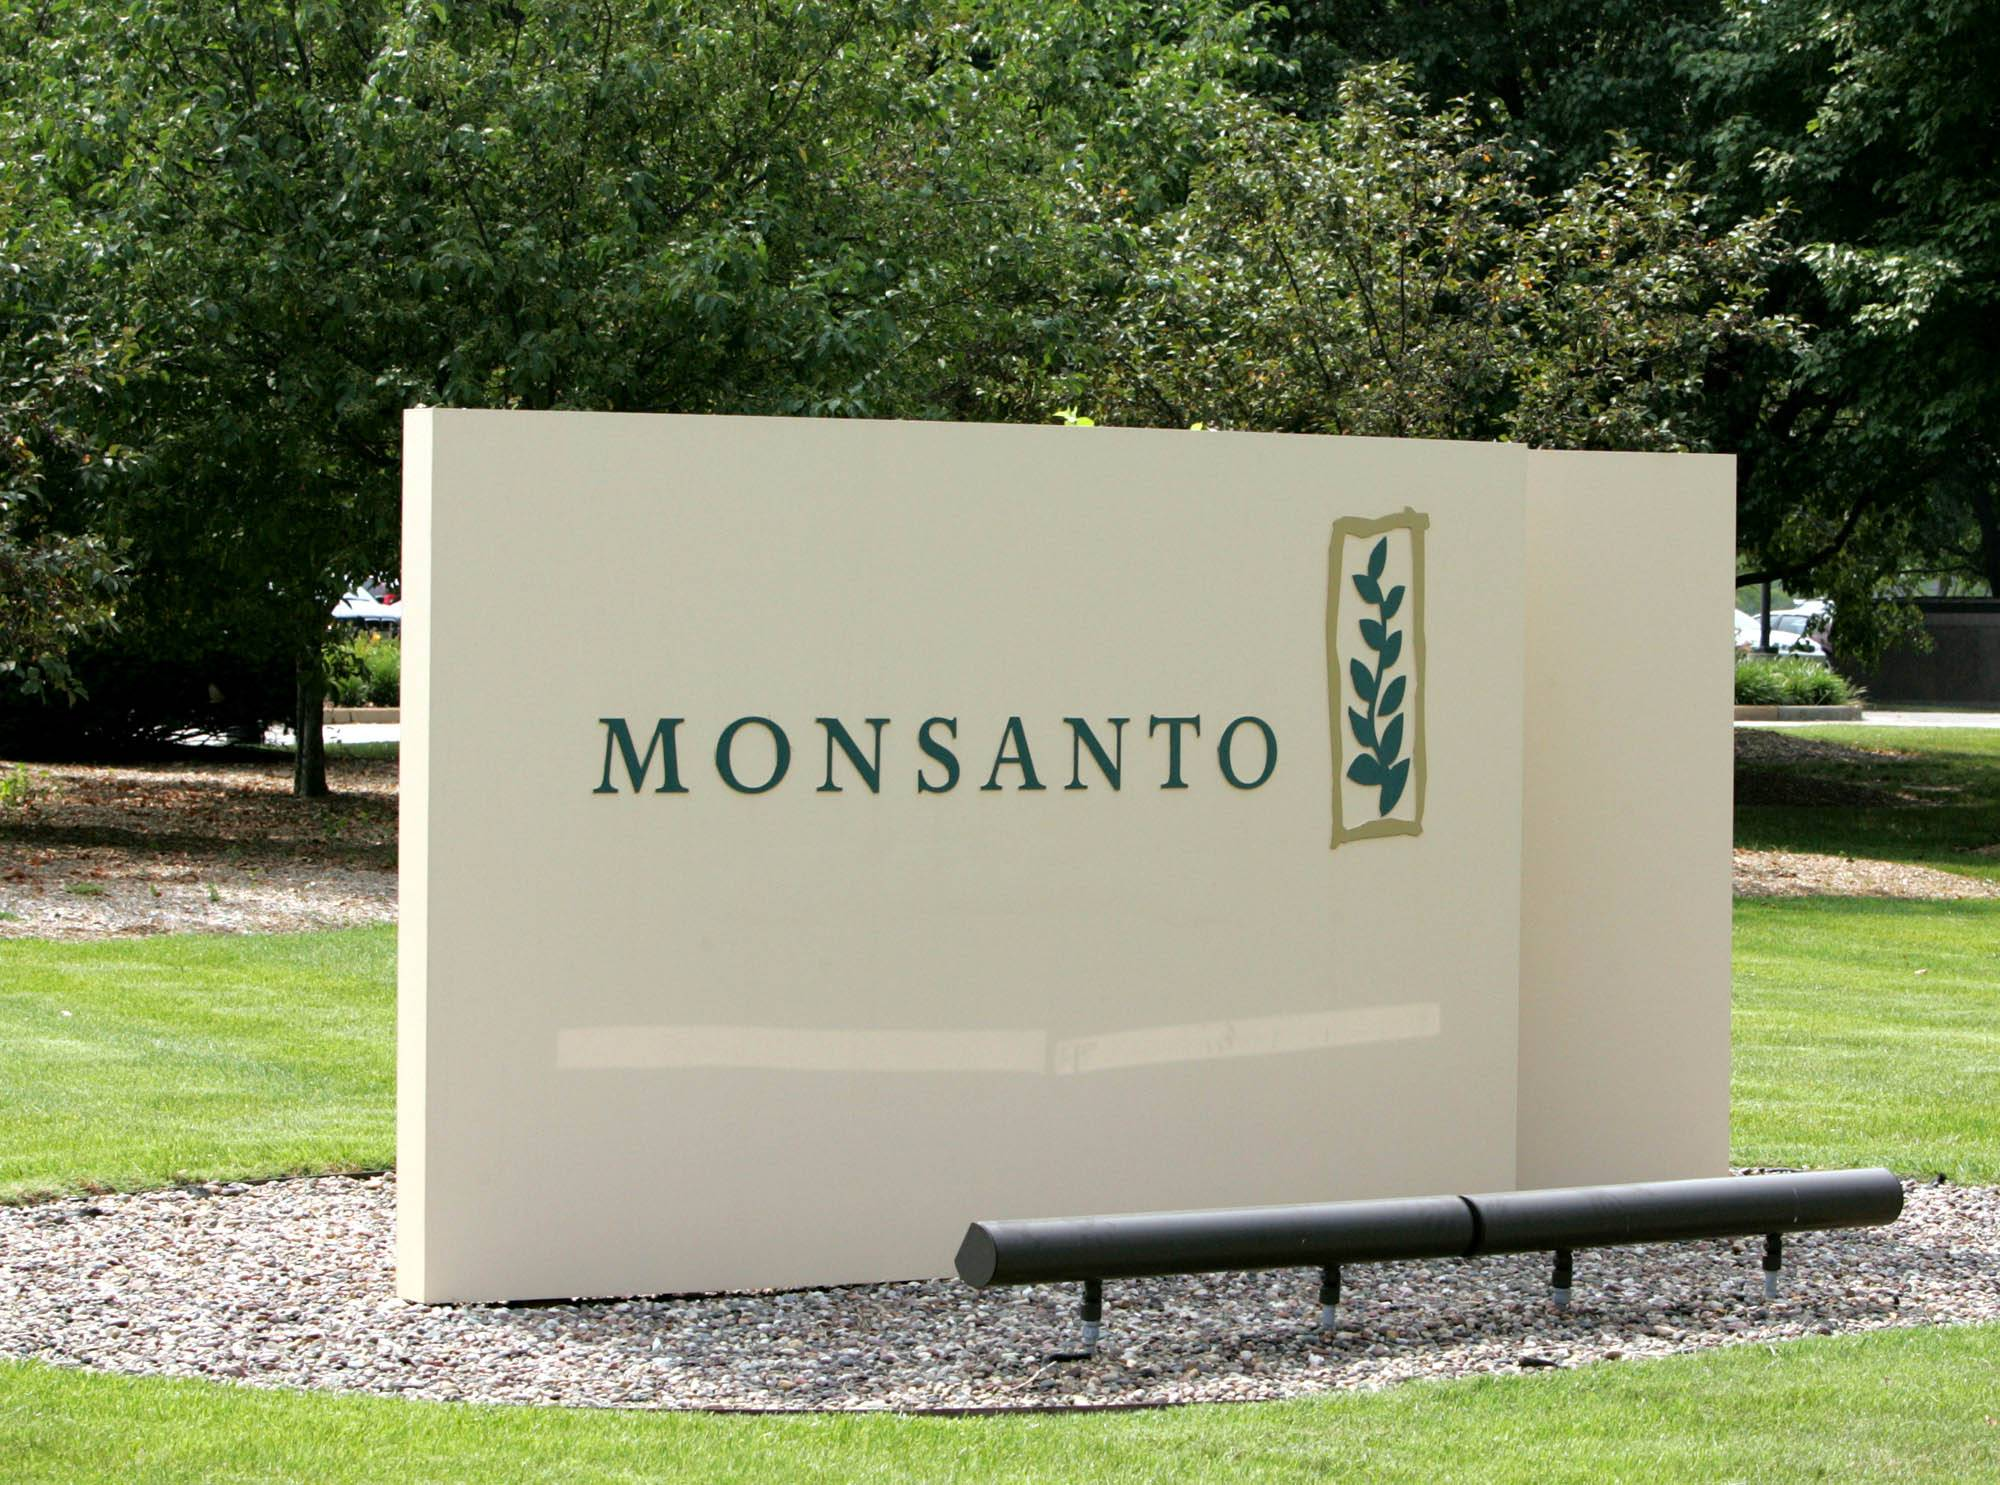 Associated PressMonsanto is introducing novel strains of familiar foods.